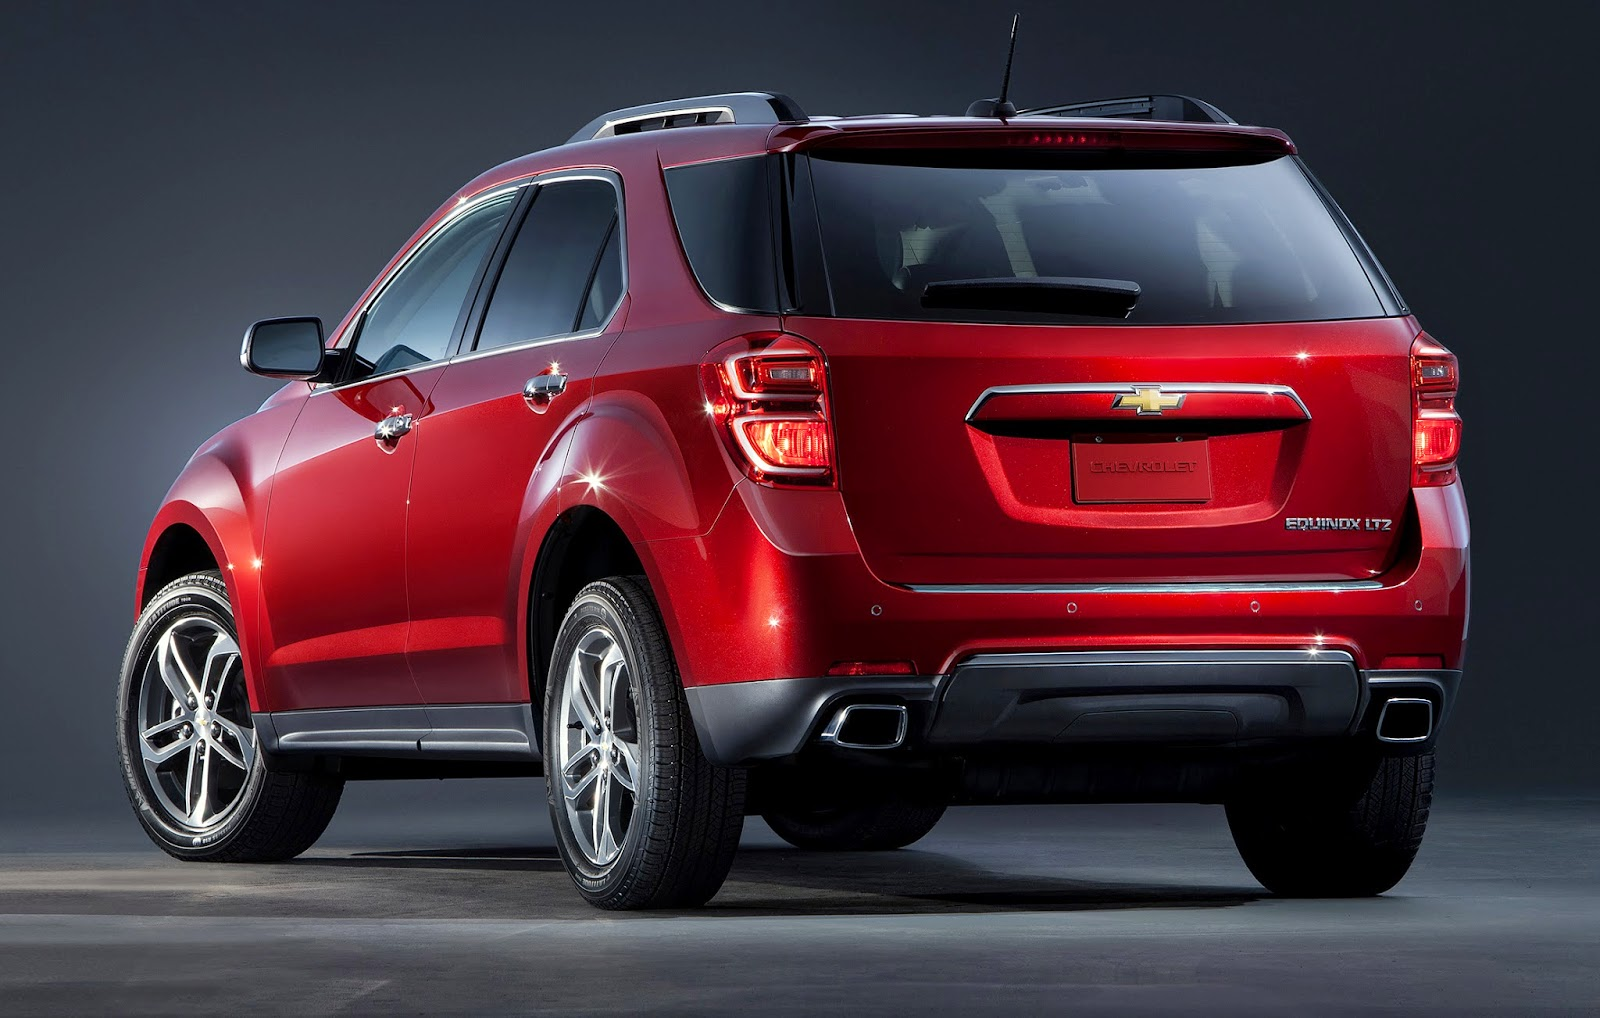 2016 chevy equinox compact crossover gets updated looks and features w videos. Black Bedroom Furniture Sets. Home Design Ideas